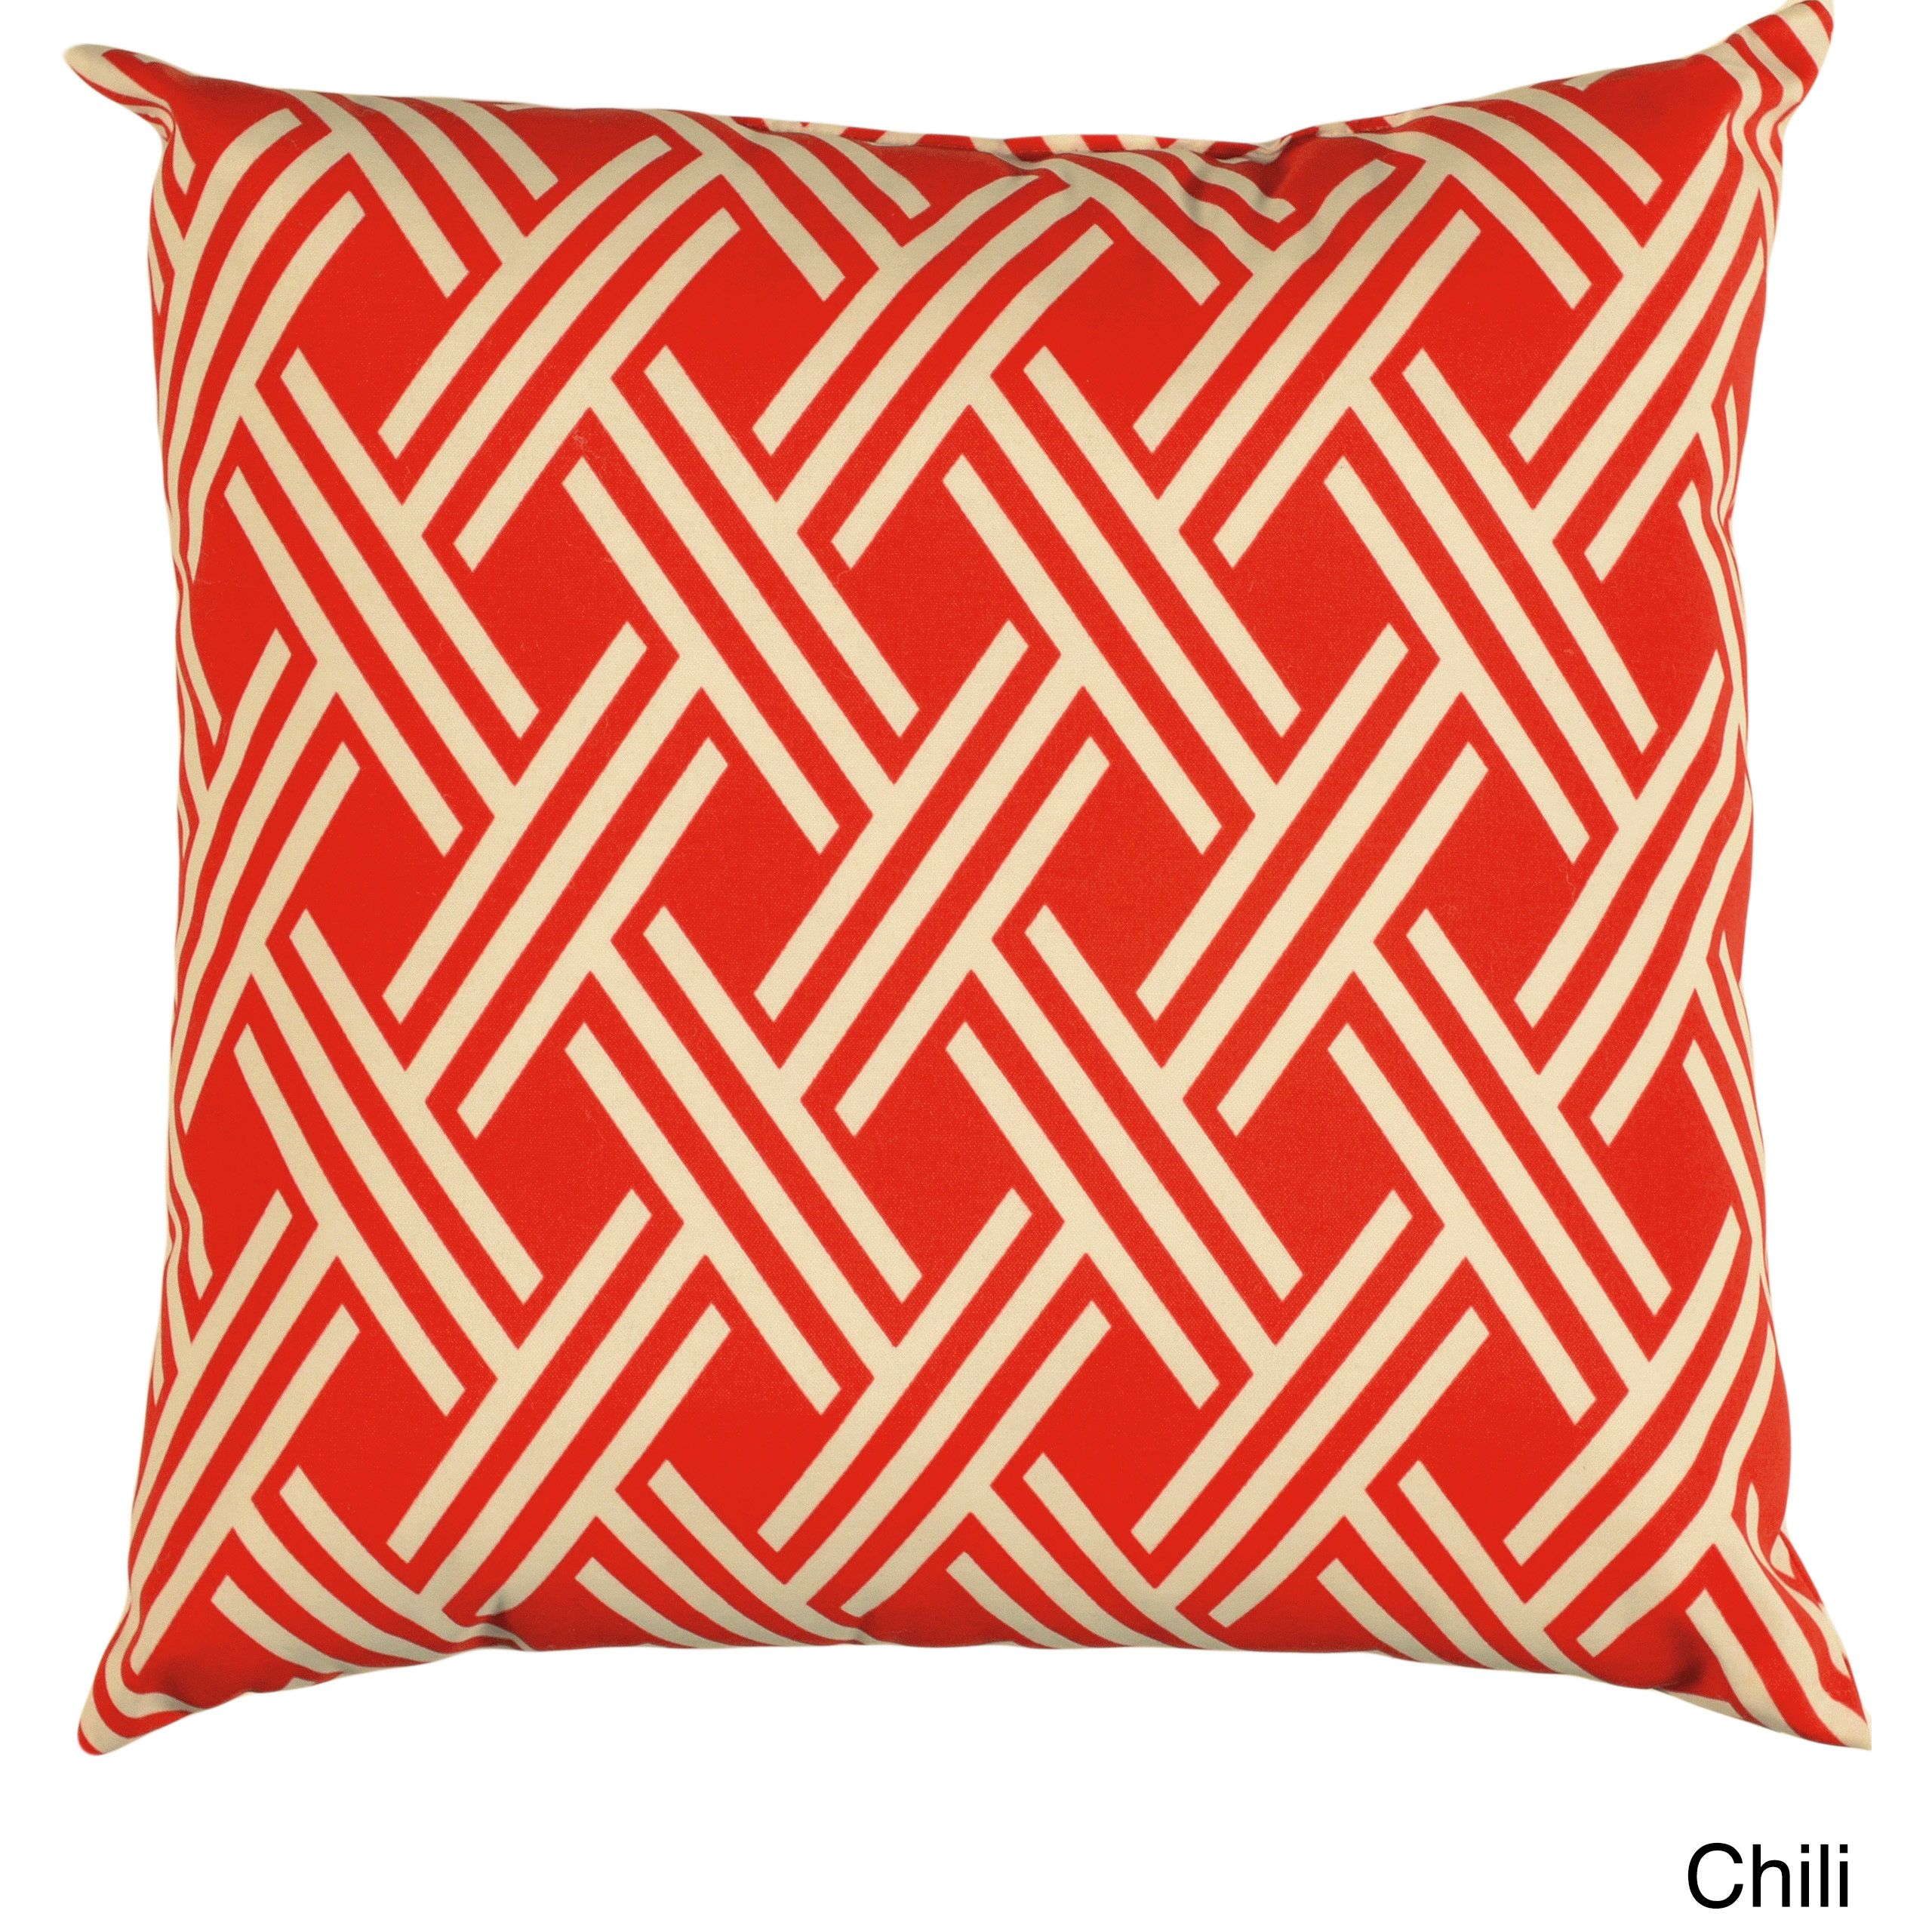 red and orange accent xfile decorative for cases throw pillow sofa pillows best pink of where fascinating the lime concept wall ideas leather on green pic